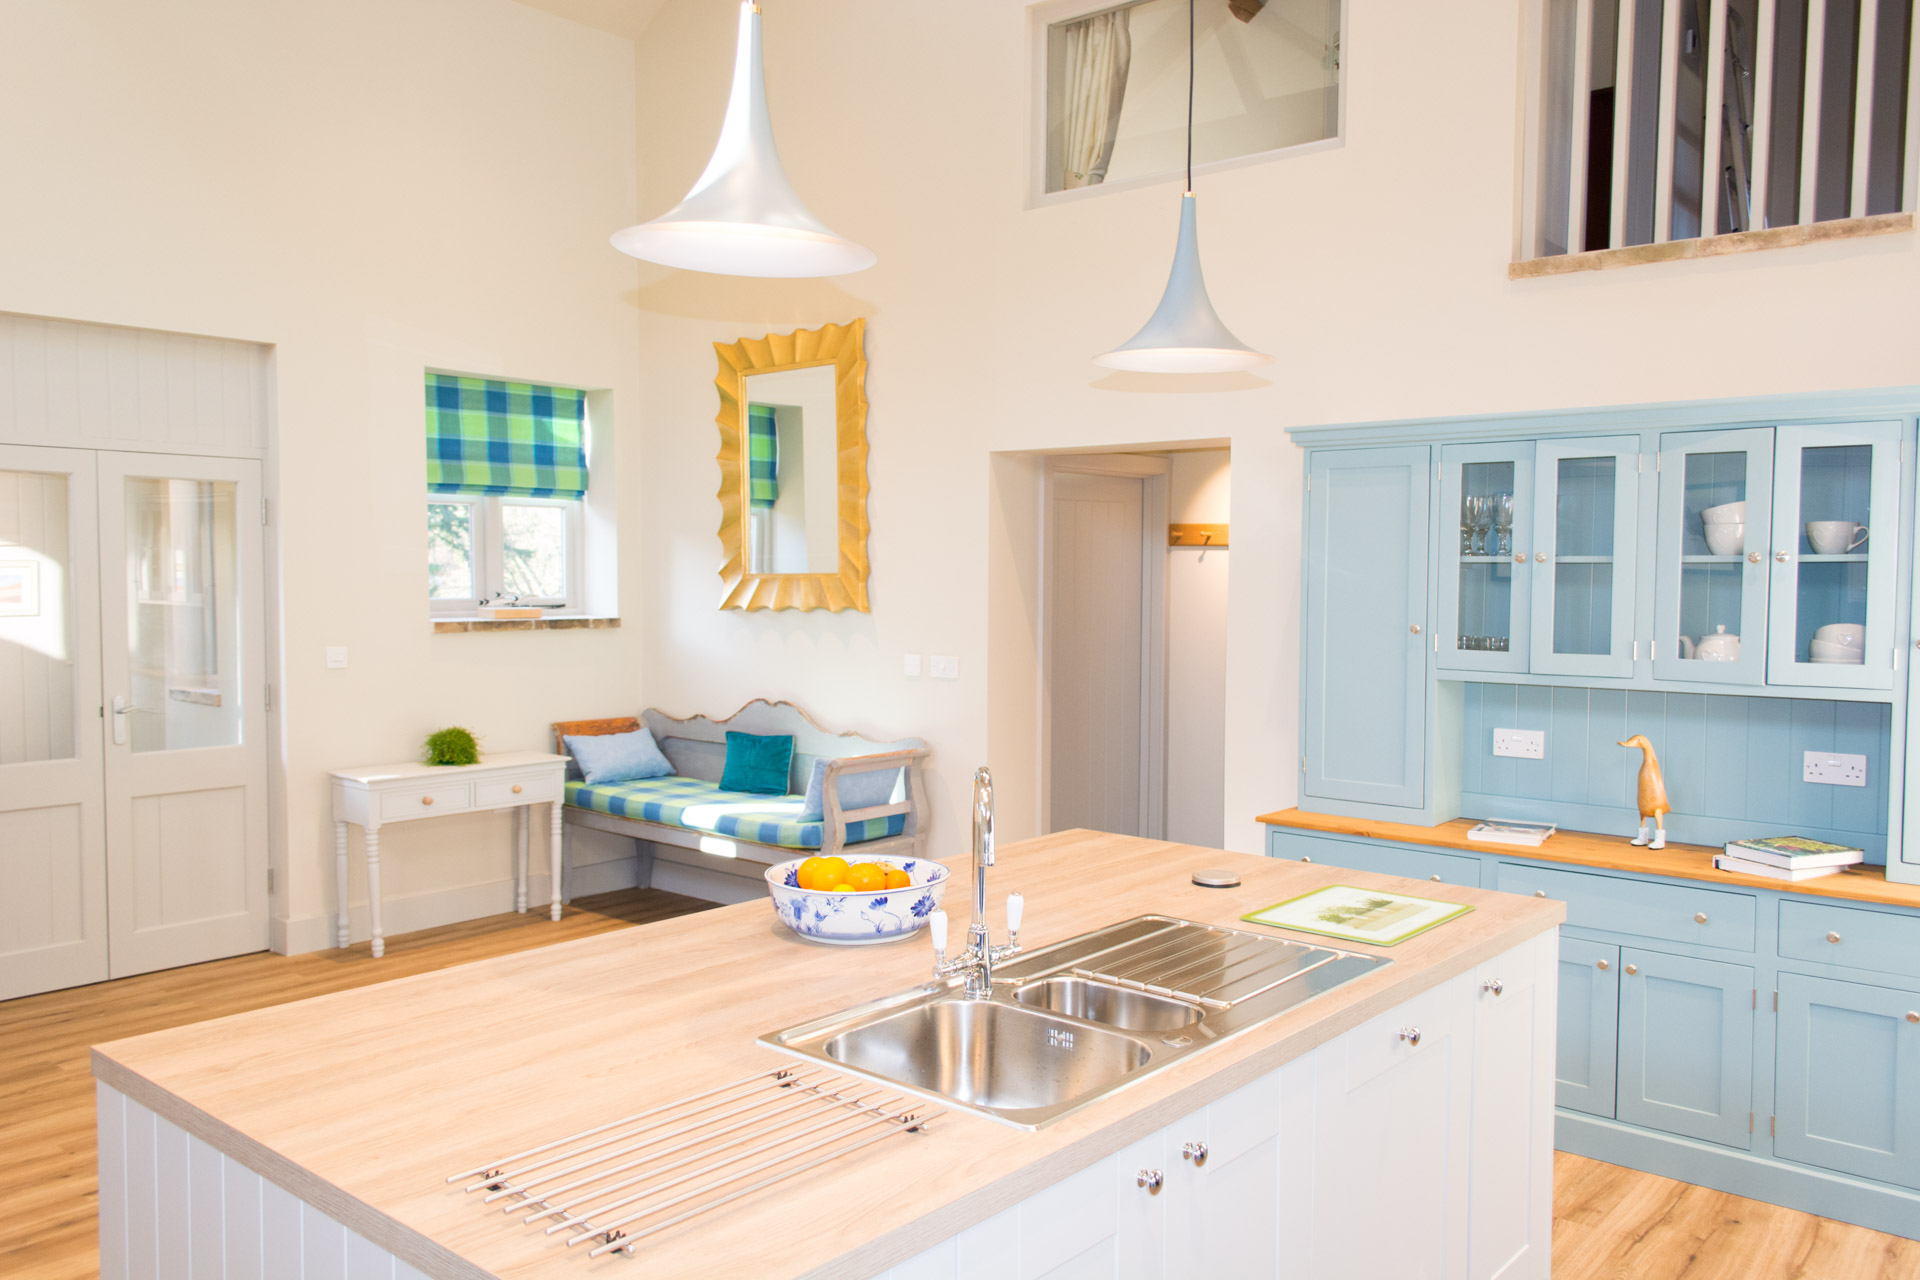 Renovated kitchen showing the kitchen island and sink angled towards the entrance to Boathouse Barn.